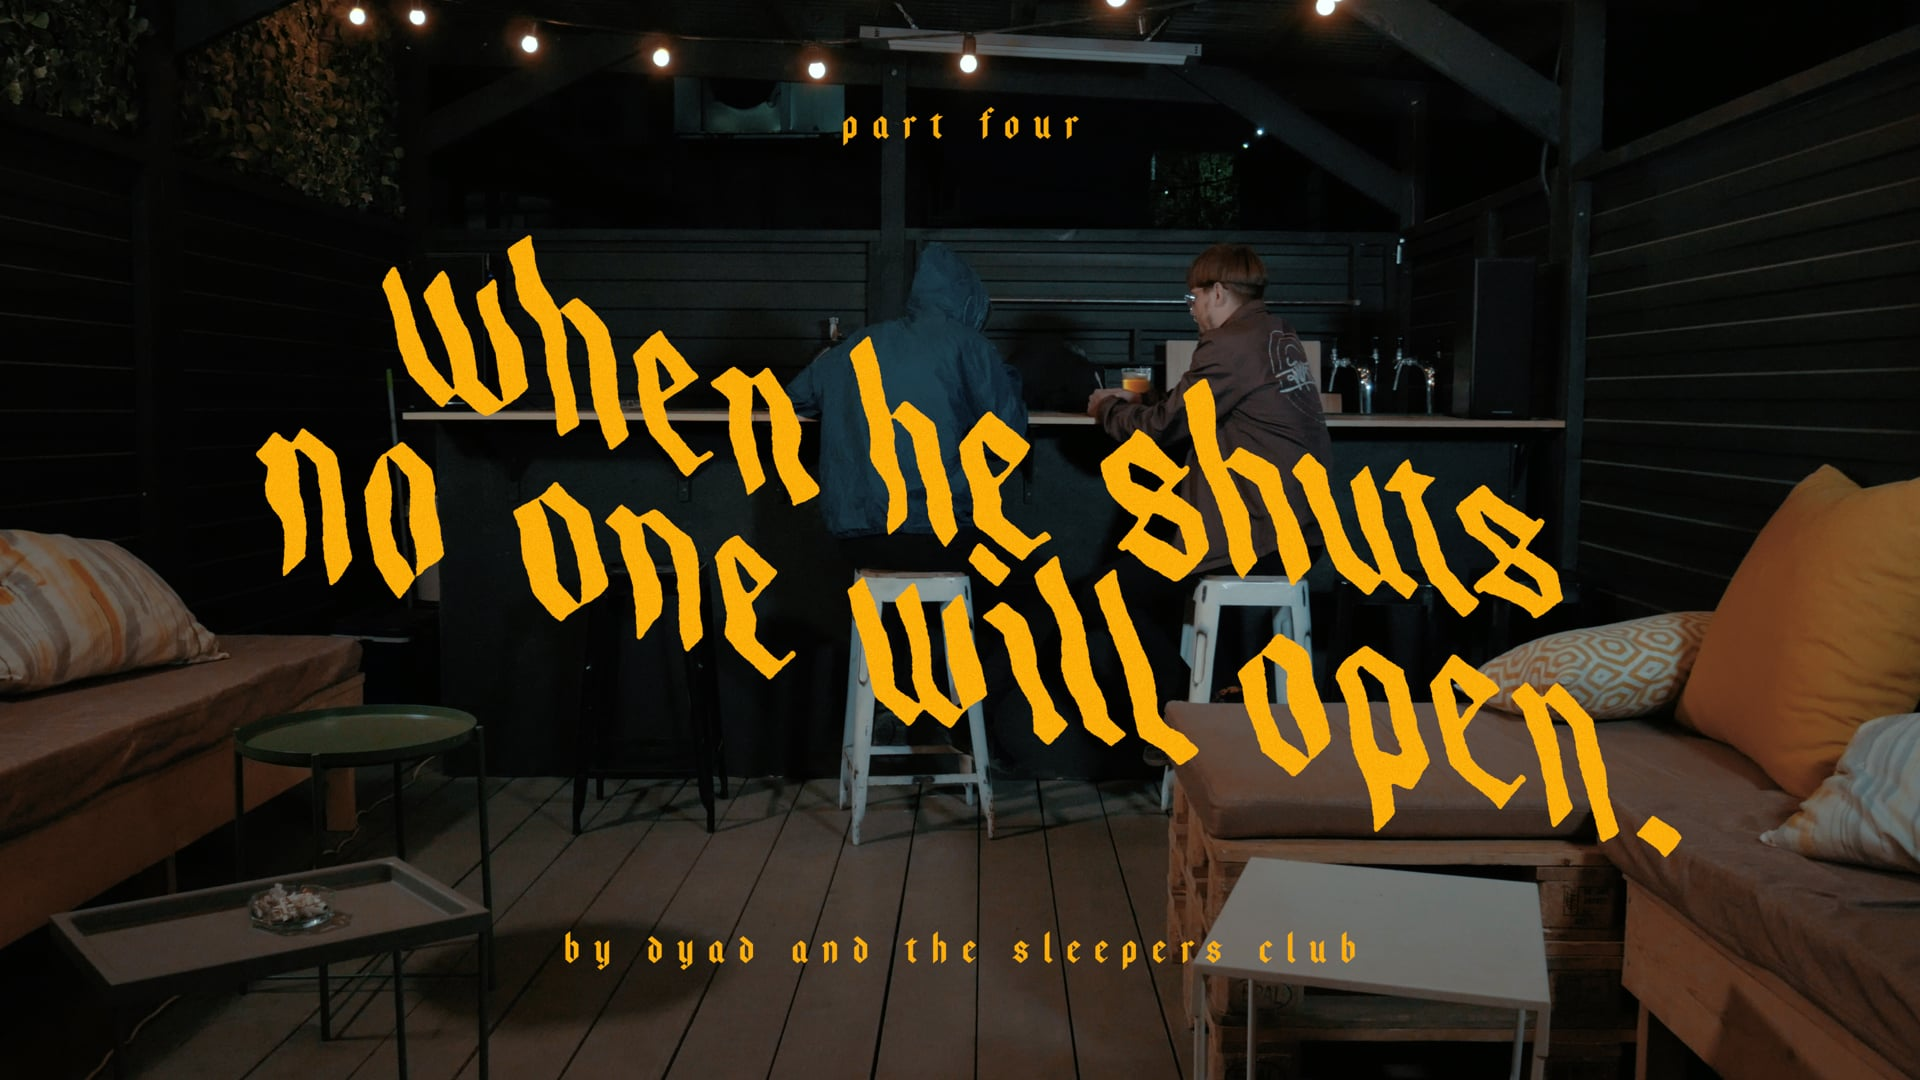 Part IV. When He Shuts No One Will Open.